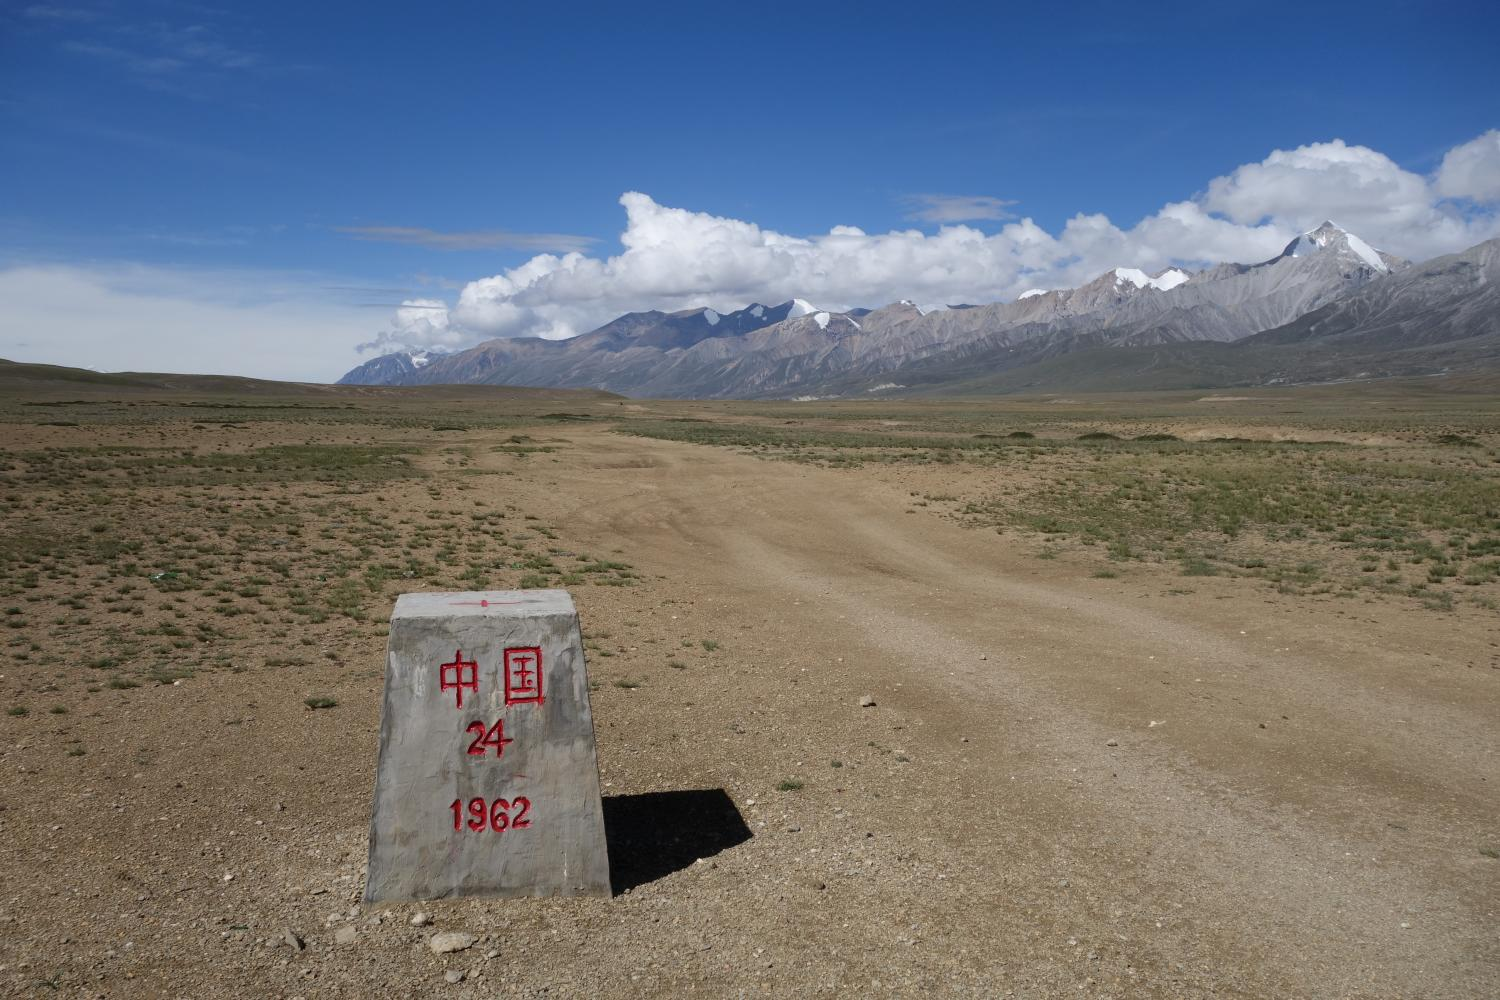 The 1962 border marker demarcates the Chinese and Nepali border atop the Tibetan Plateau at Neychung-Likse